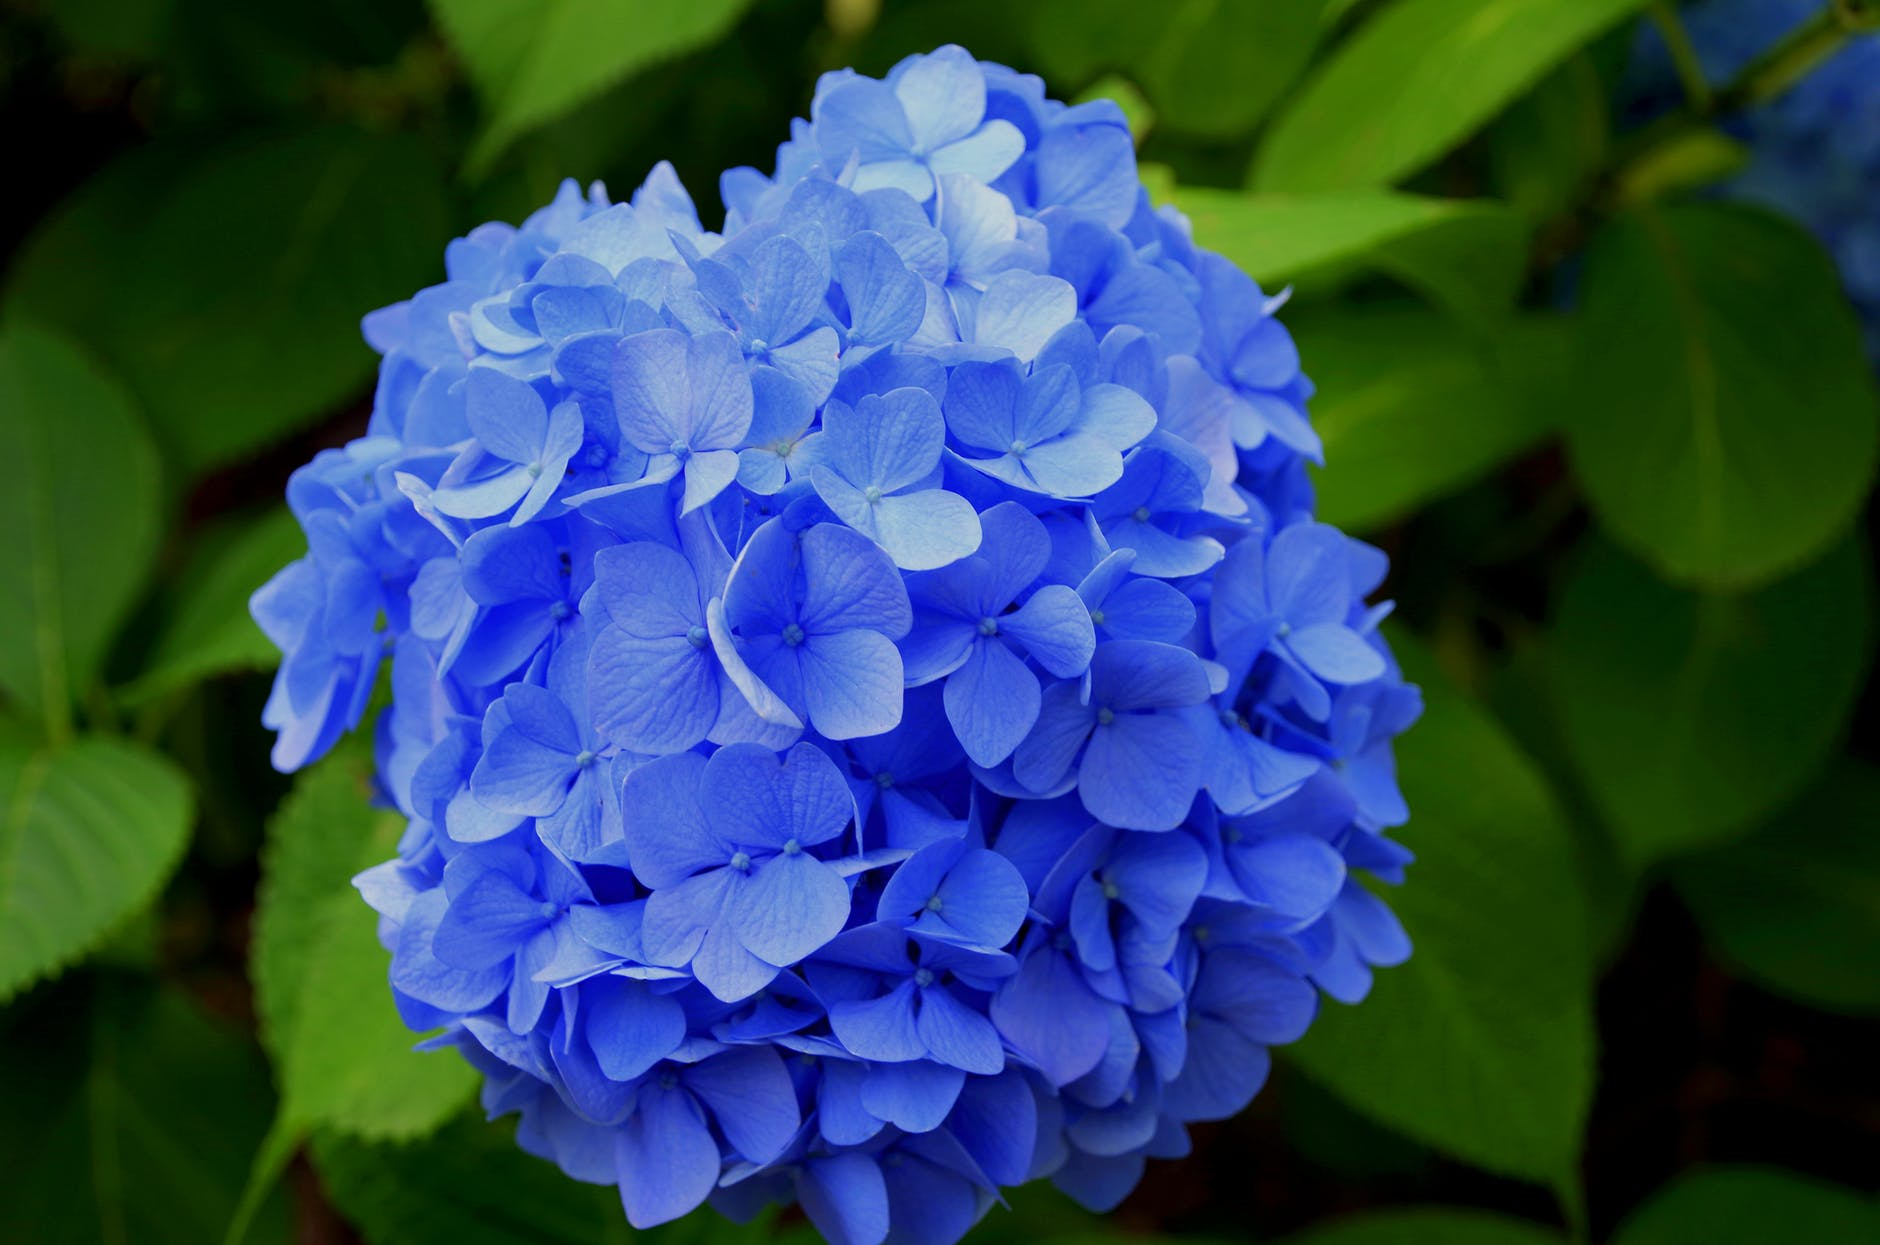 beautiful blooming blossom blue